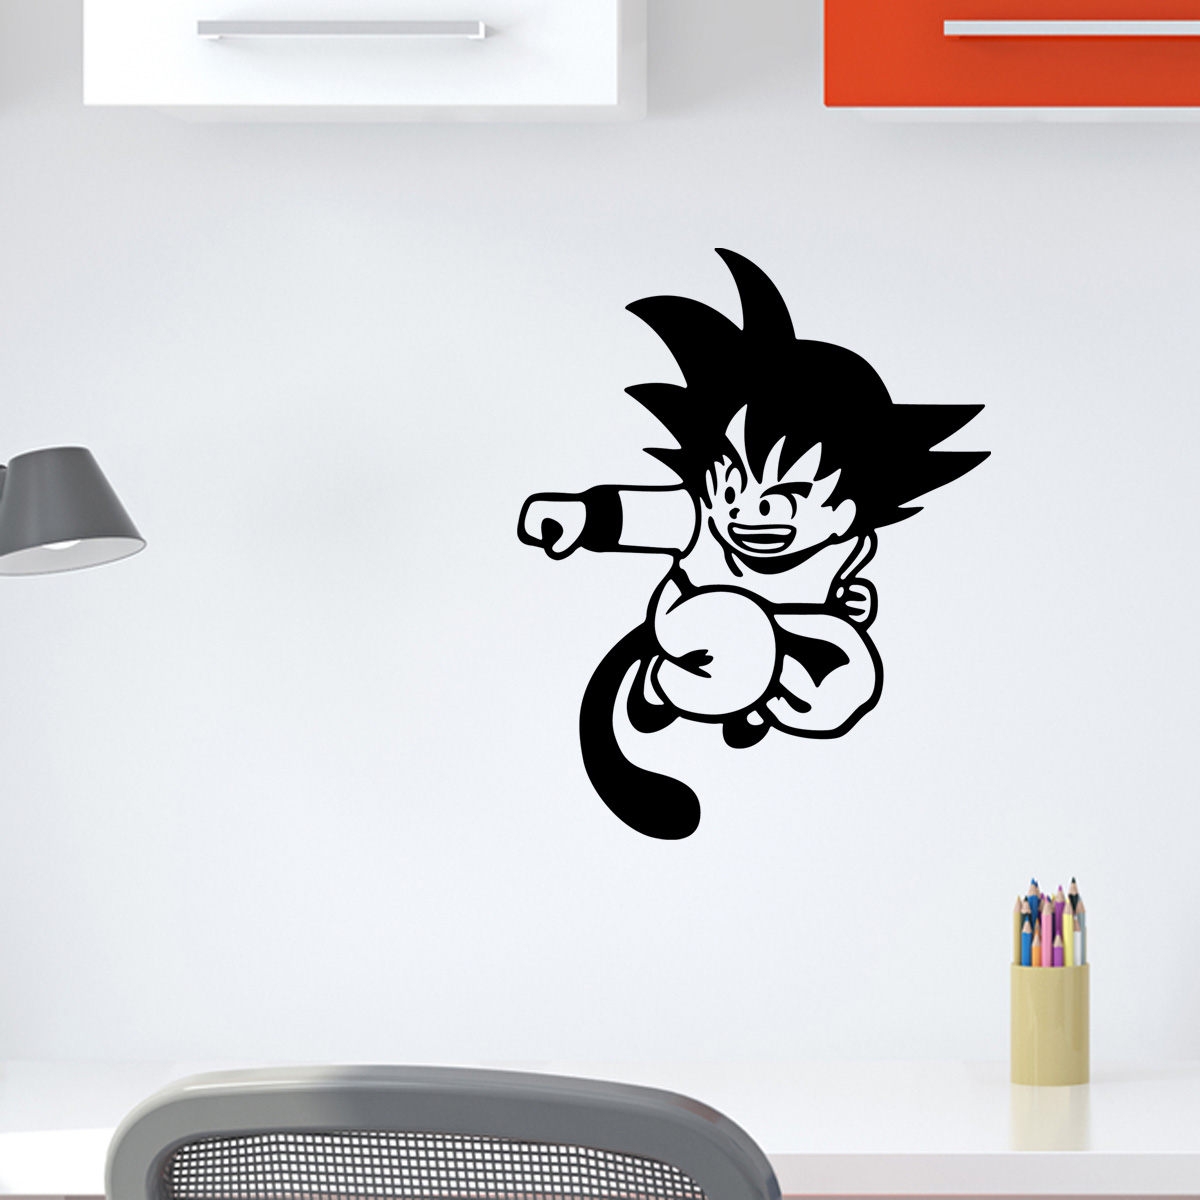 stickers muraux pour les enfants sticker dragon ball attaque ambiance. Black Bedroom Furniture Sets. Home Design Ideas